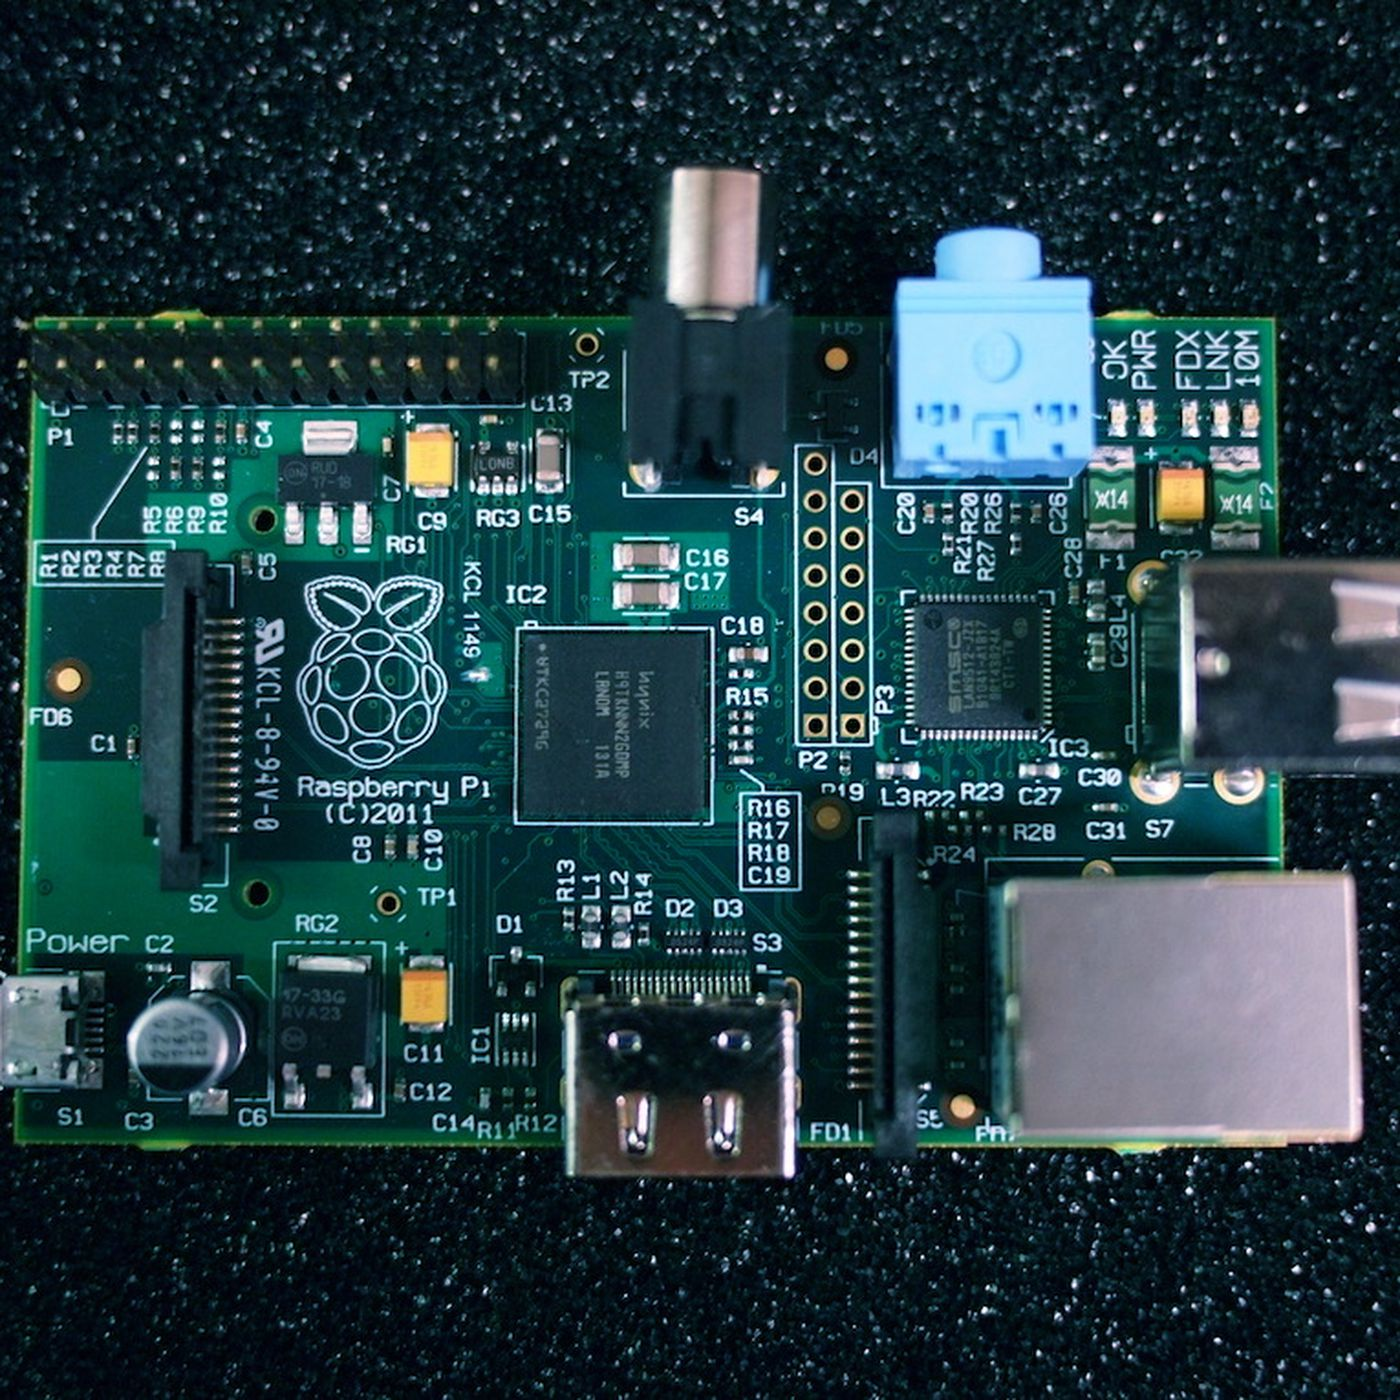 Raspberry Pi sold over 12 5 million boards in five years - The Verge